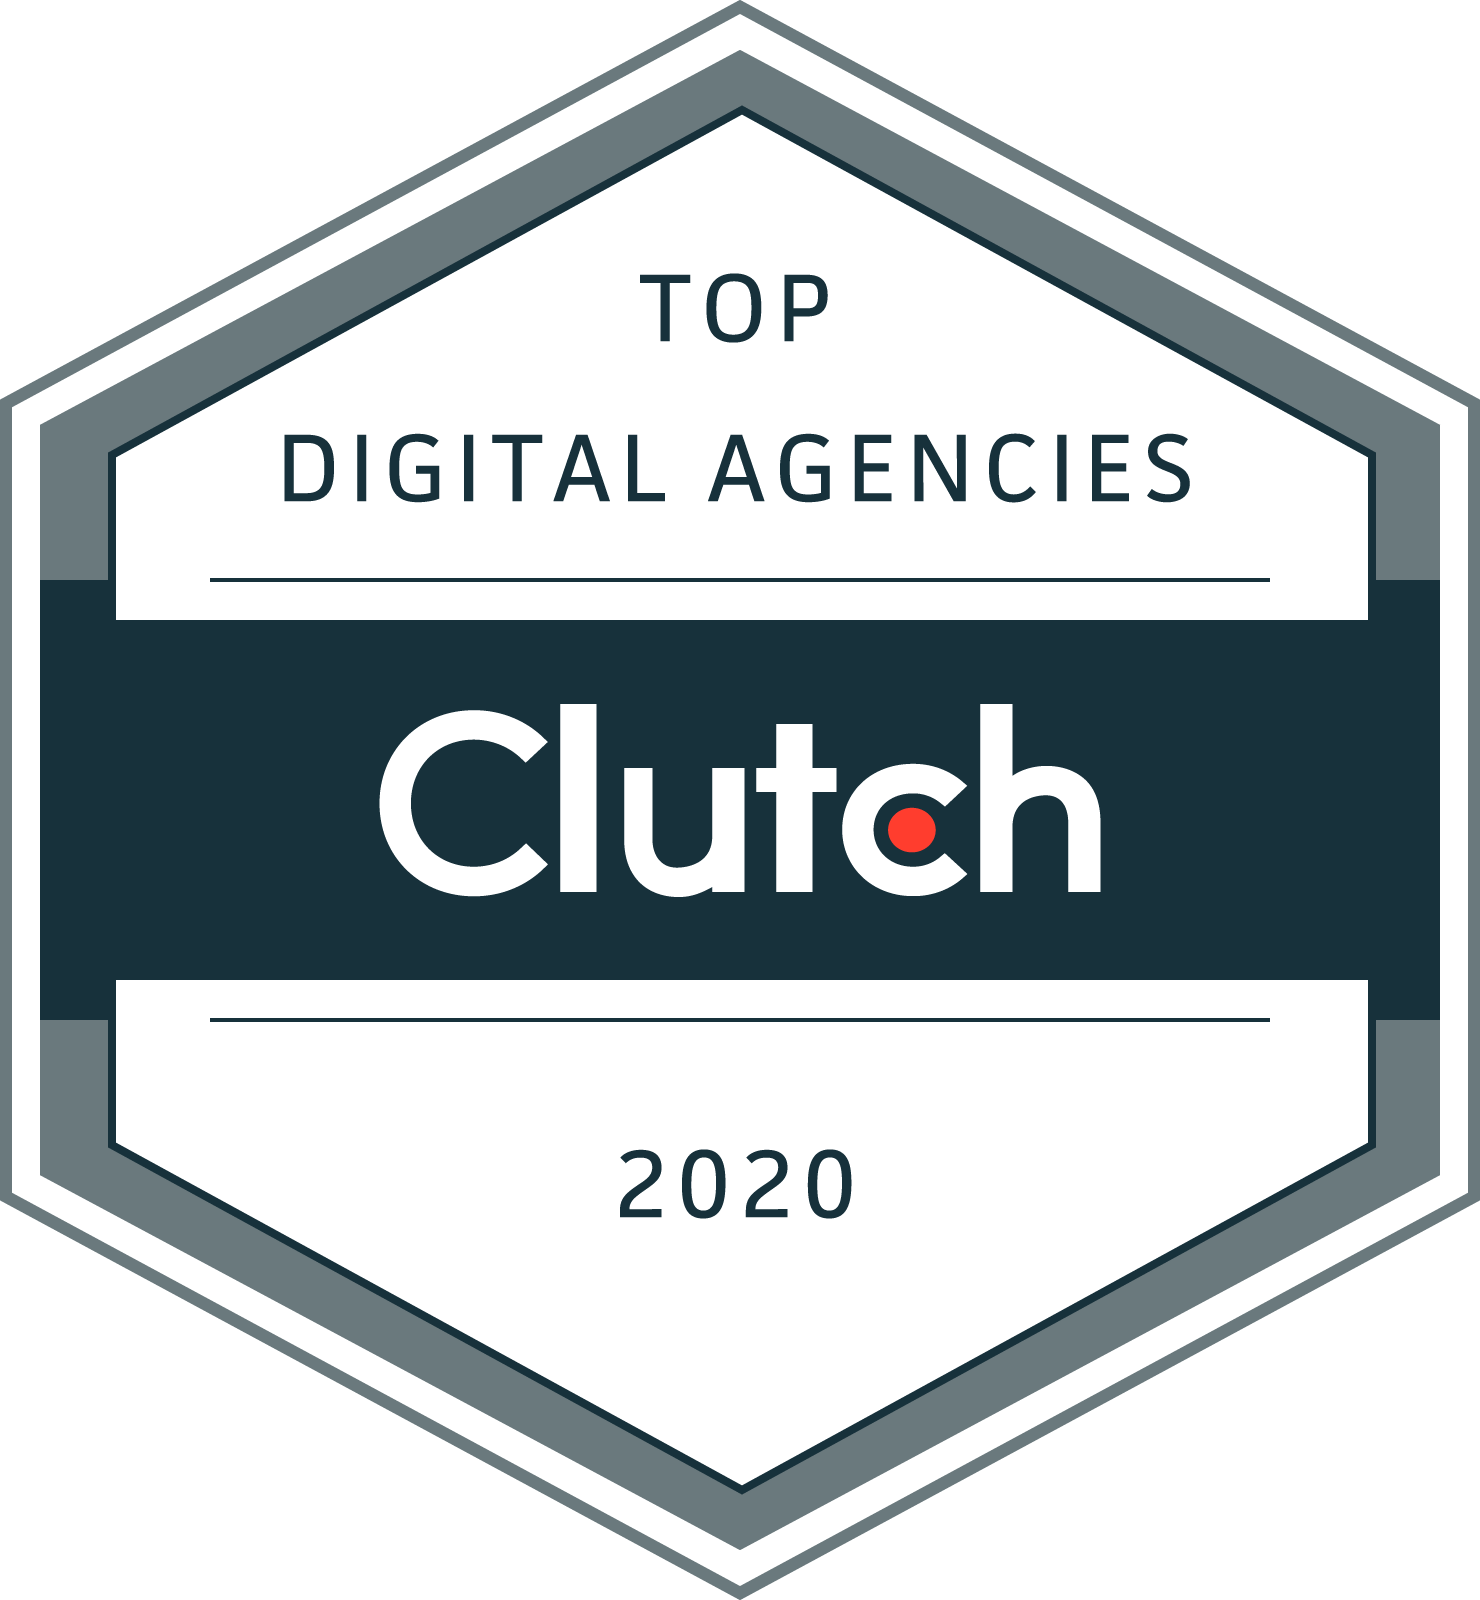 Clutch Top Digital Agencies 2020